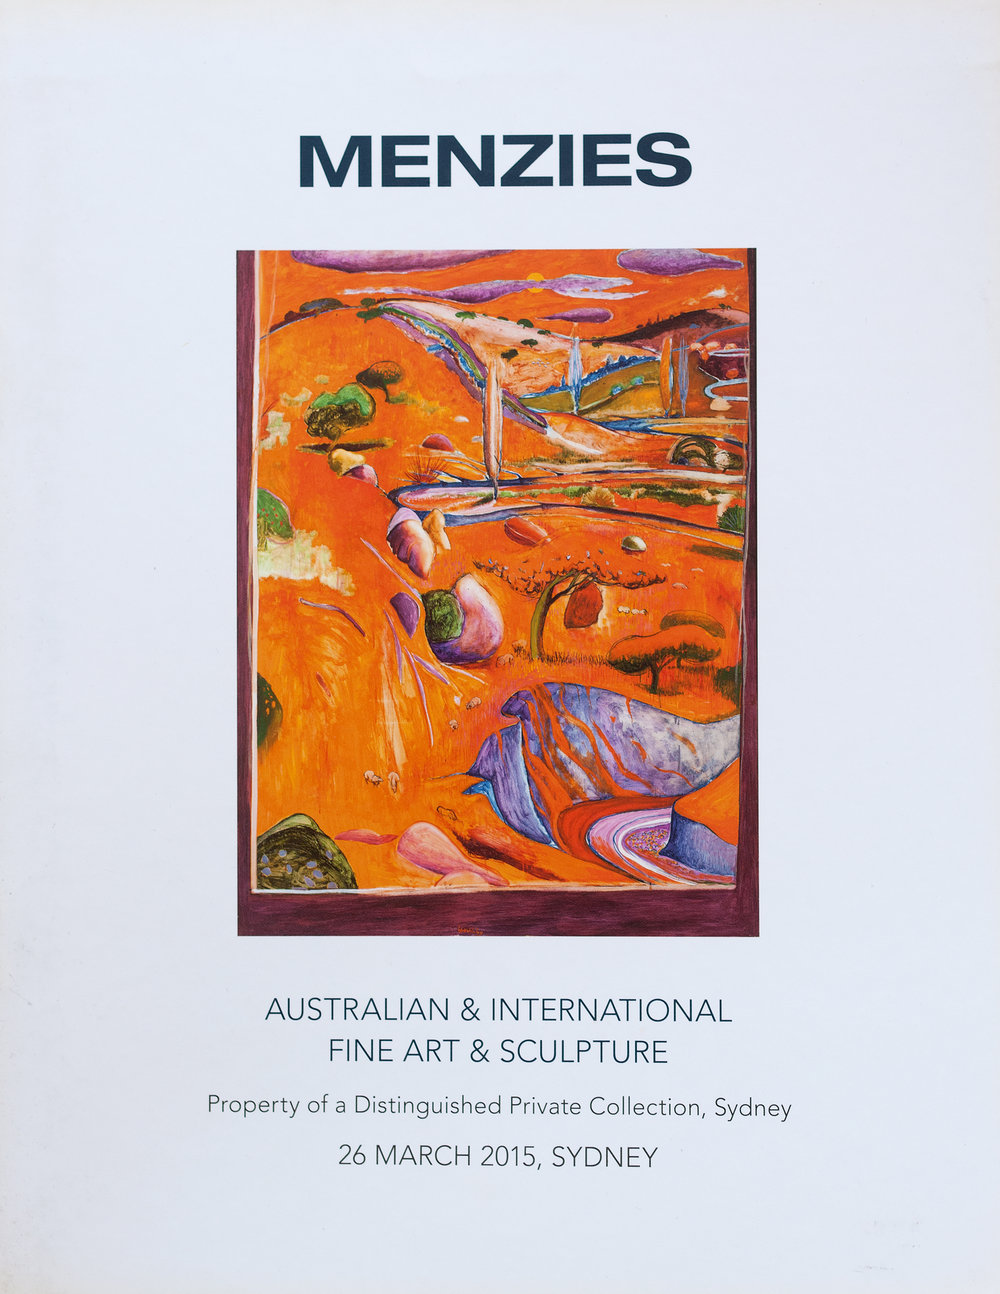 171023 Menzies Catalogues_015.jpg